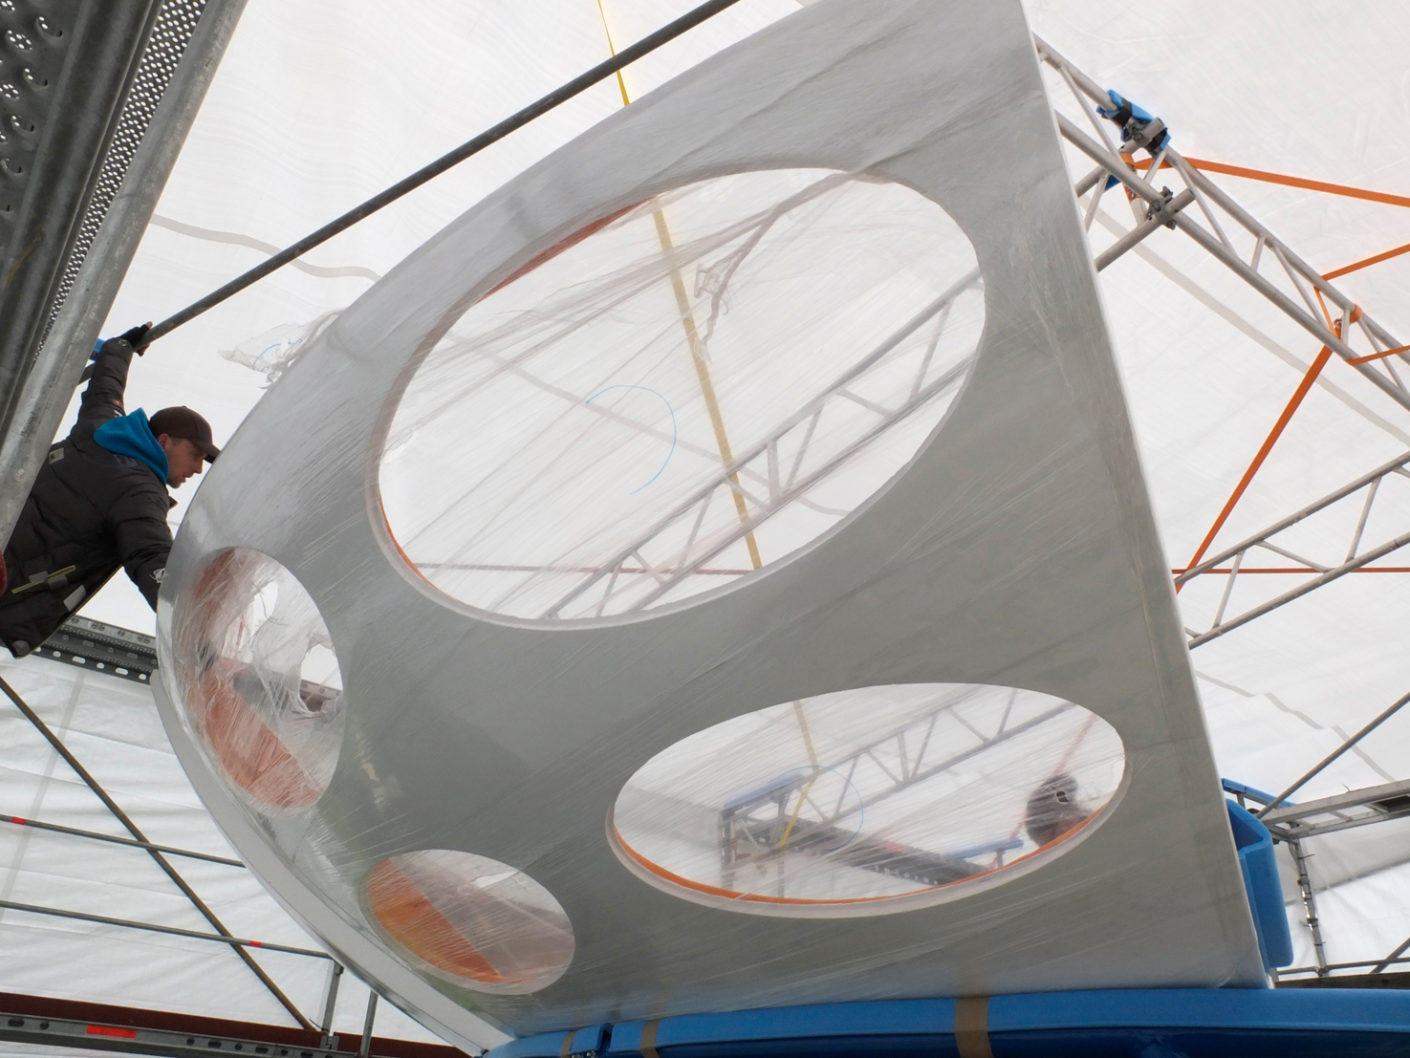 Restoration of the 16 circle segments of the plastic house.